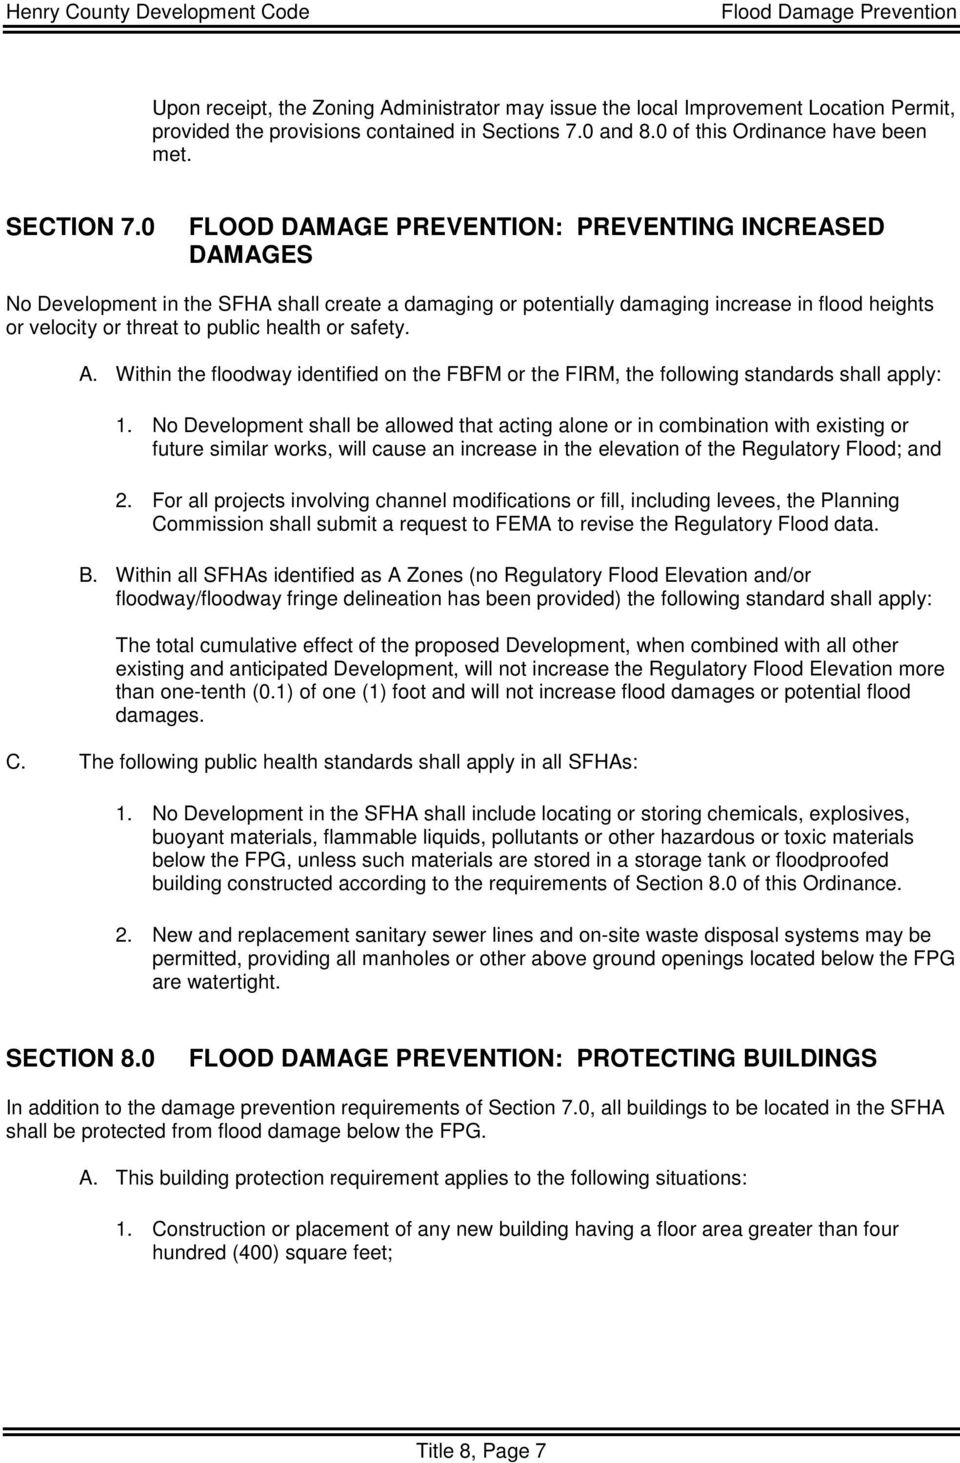 0 FLOOD DAMAGE PREVENTION: PREVENTING INCREASED DAMAGES No Development in the SFHA shall create a damaging or potentially damaging increase in flood heights or velocity or threat to public health or